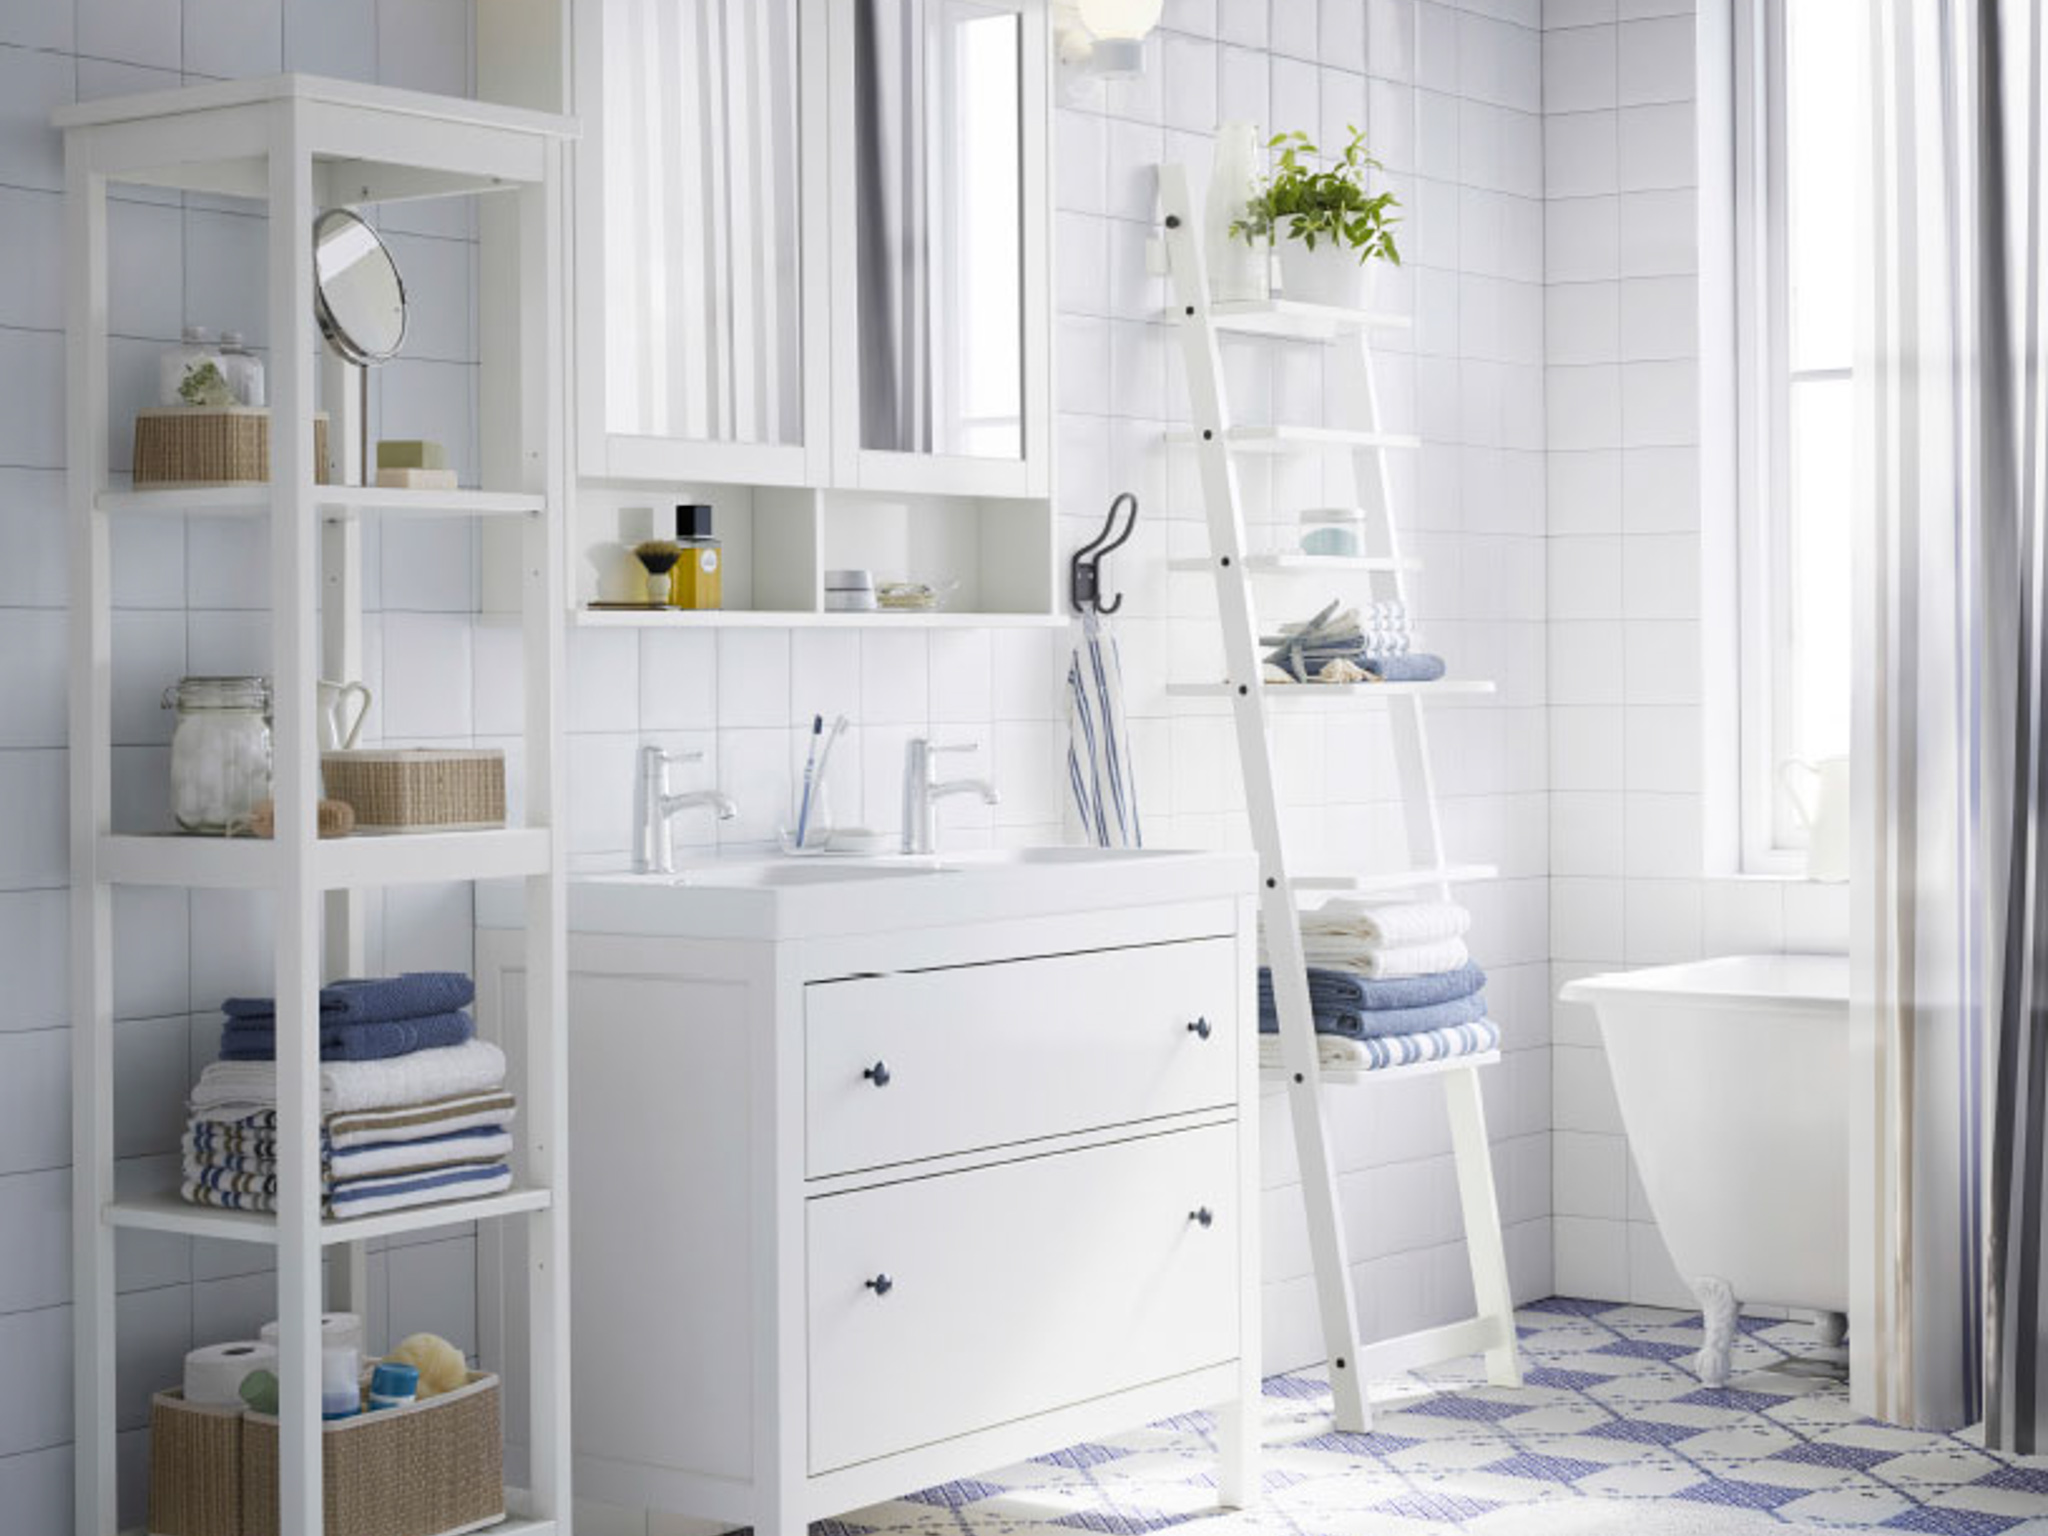 Best Interior With Bathroom Curtain Ideas also Ladder Shelve Beside Cabinet